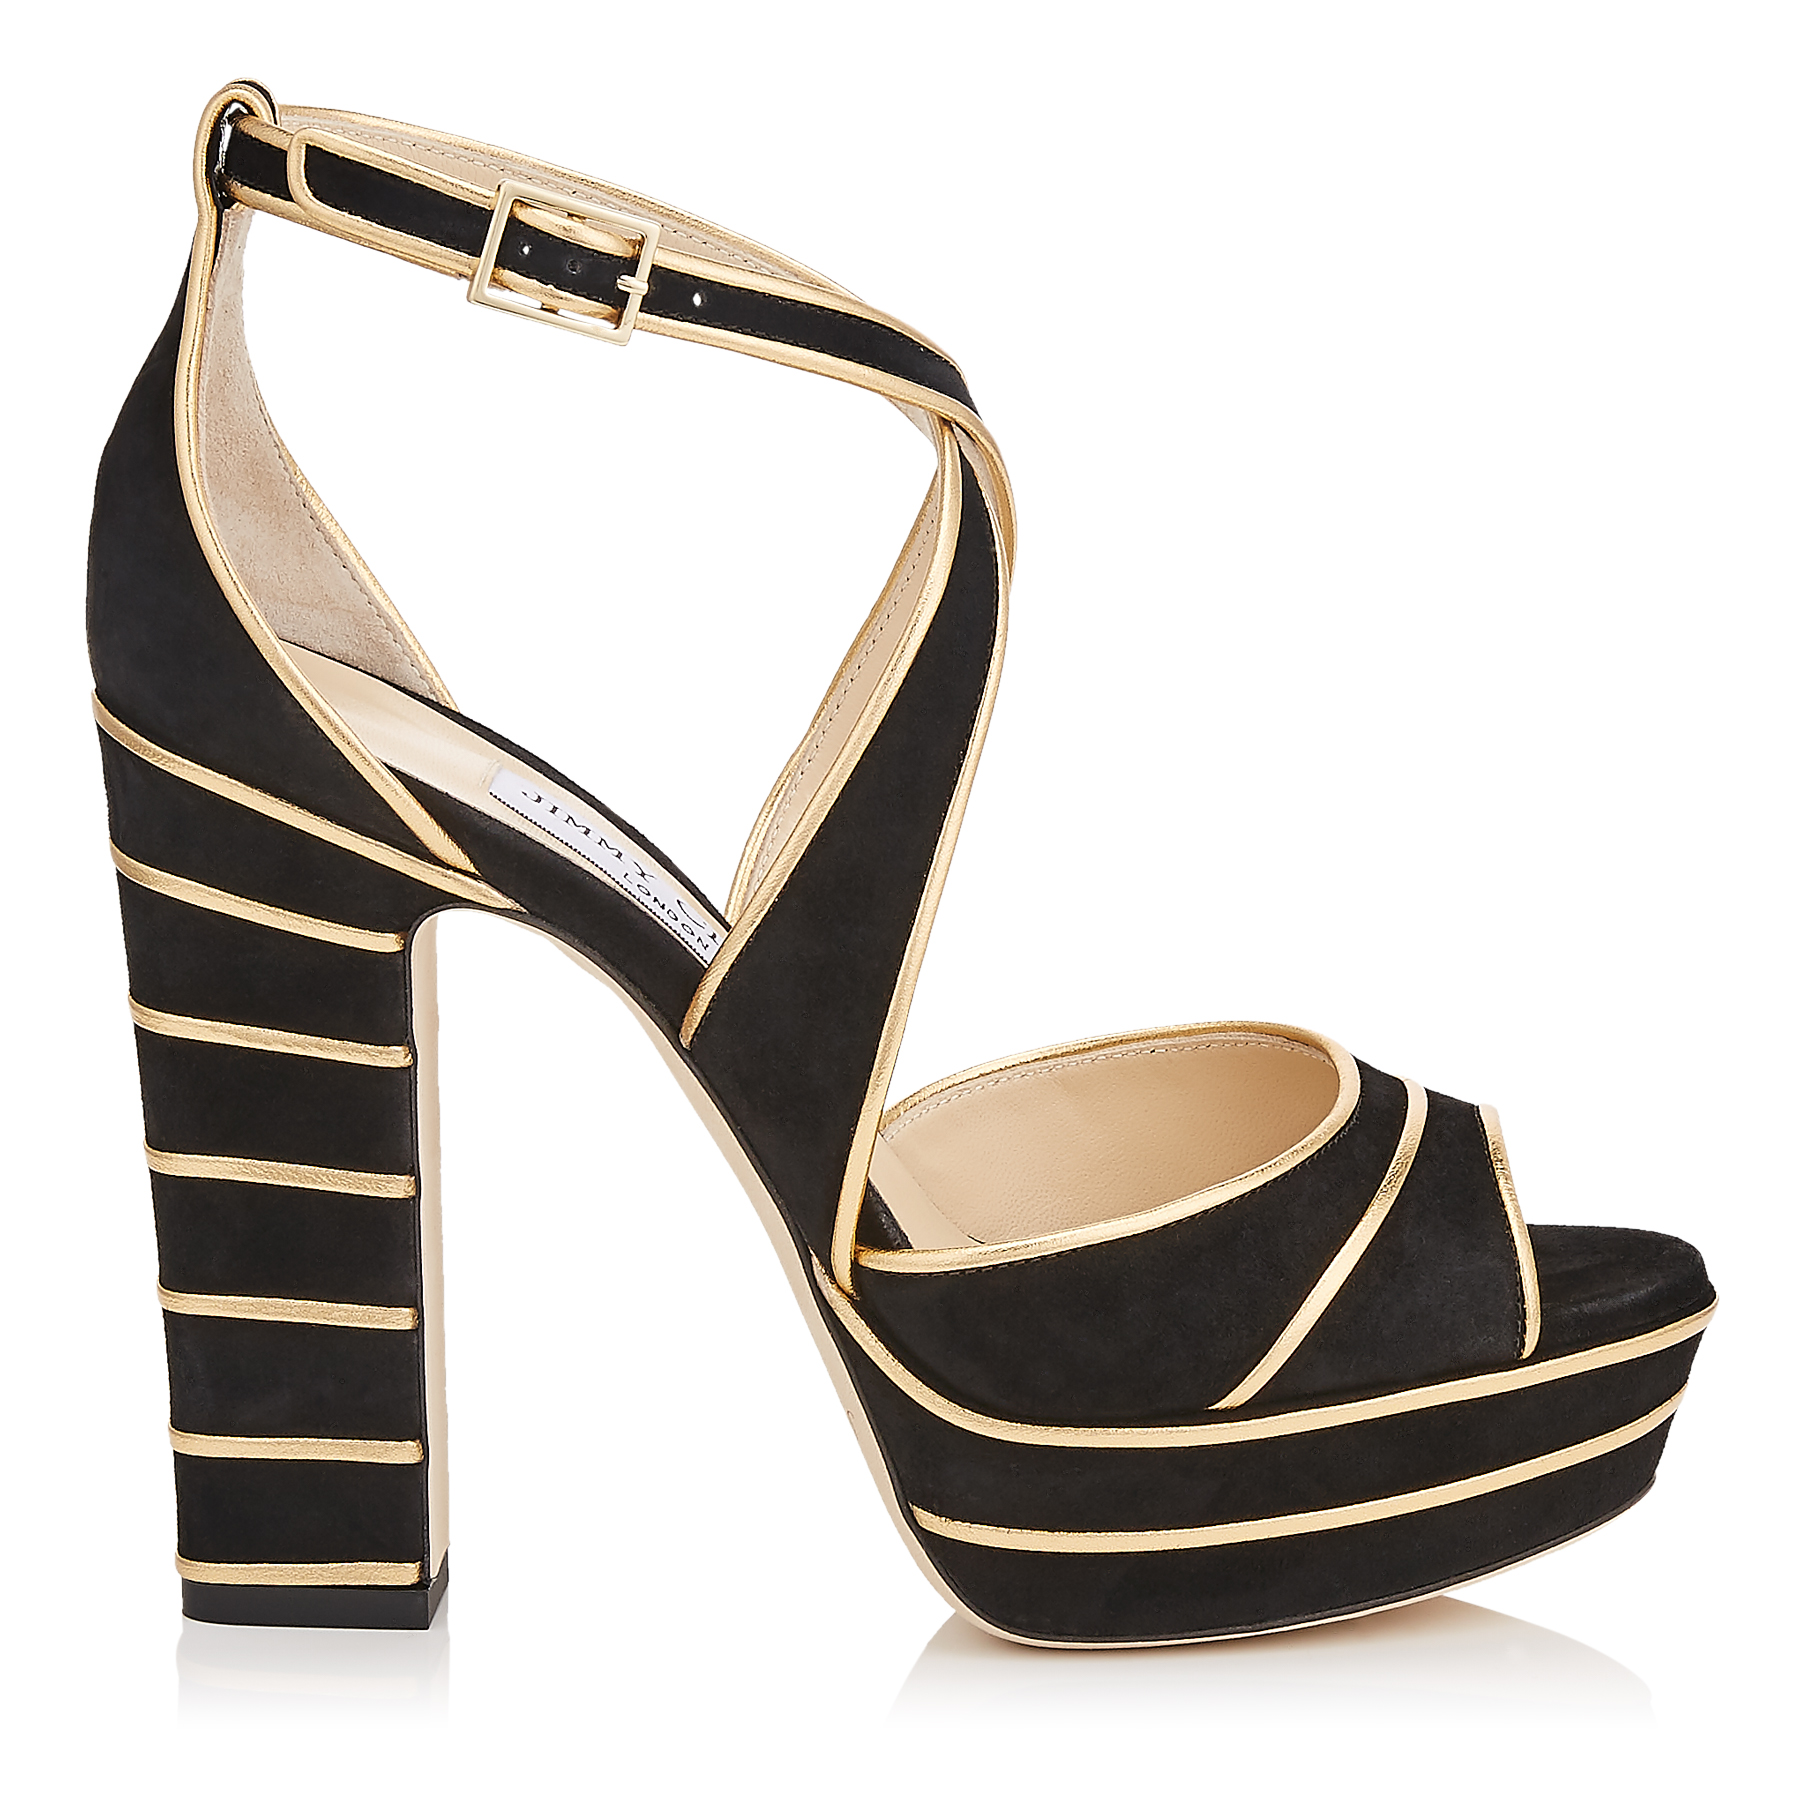 APRIL 120 Black Suede Platform Sandals with Gold Metallic Nappa Leather Piping by Jimmy Choo